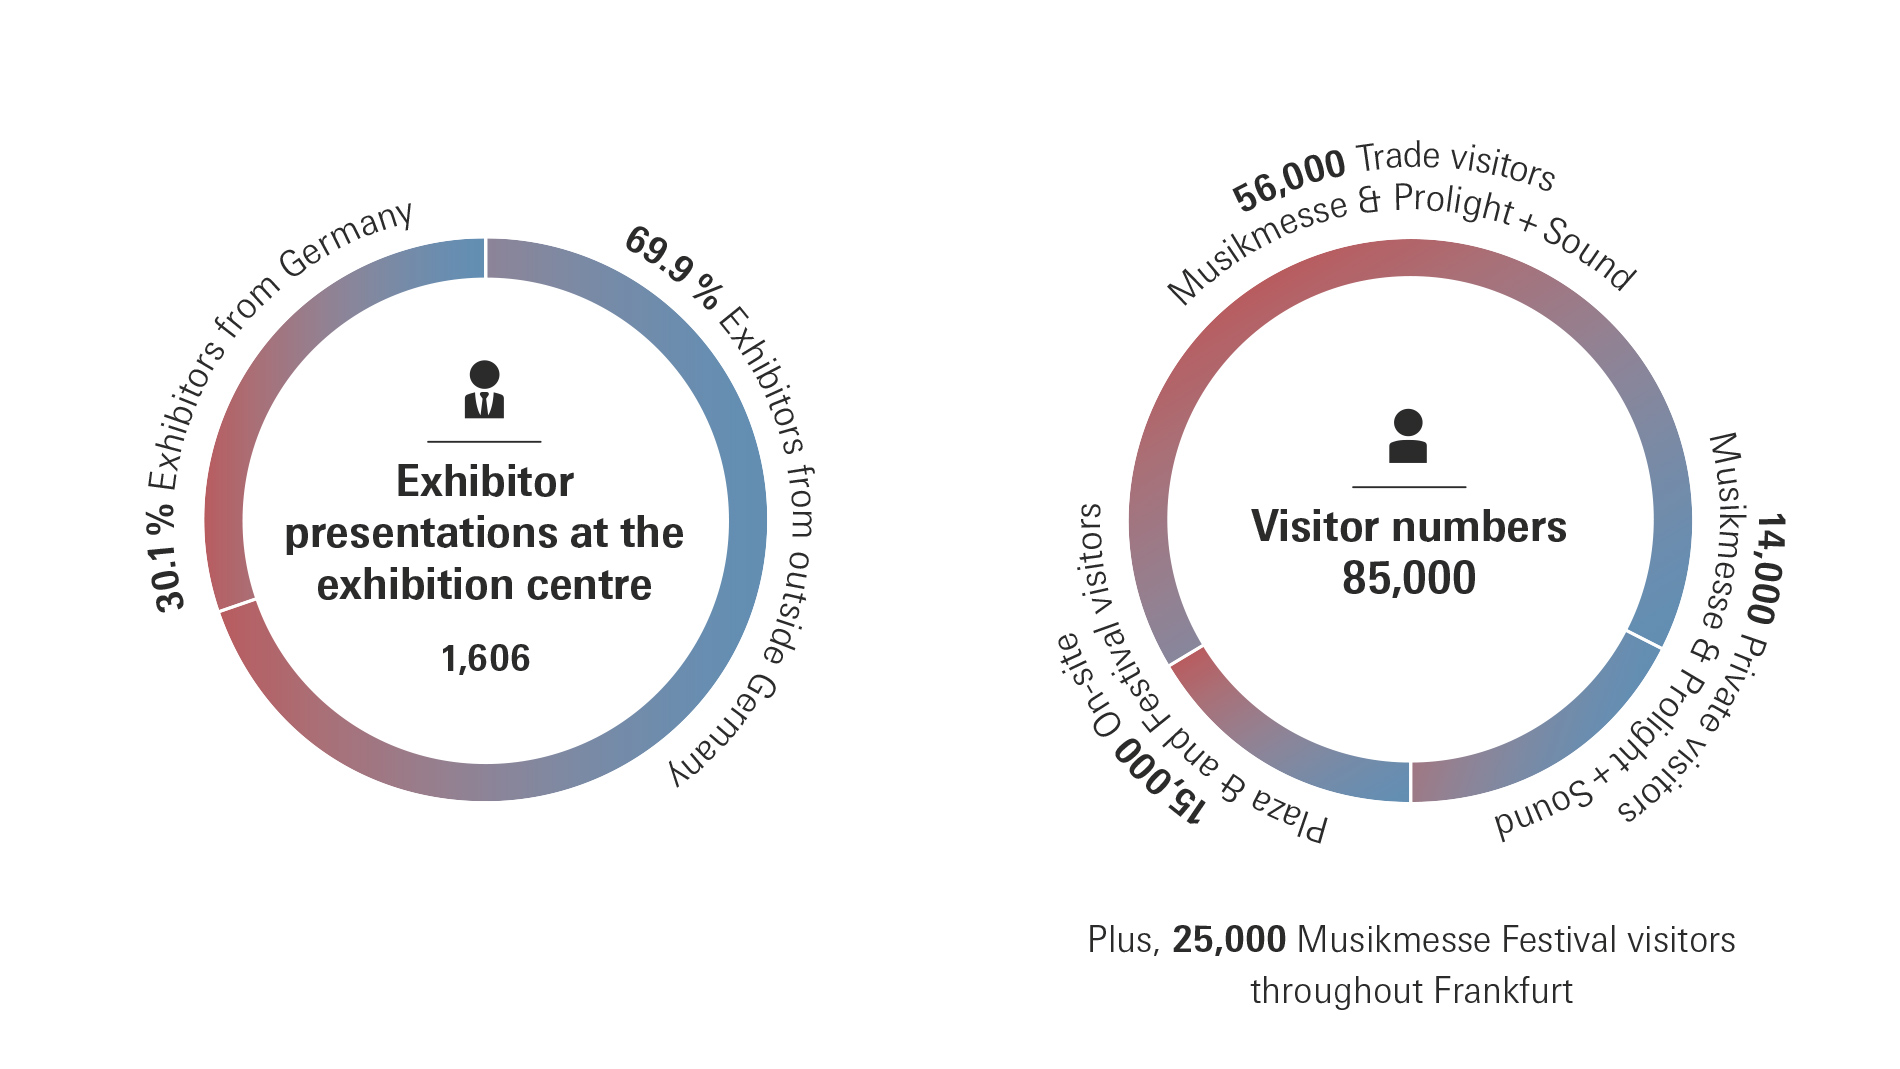 Prolight + Sound: Numbers of exhibitors and visitors 2019